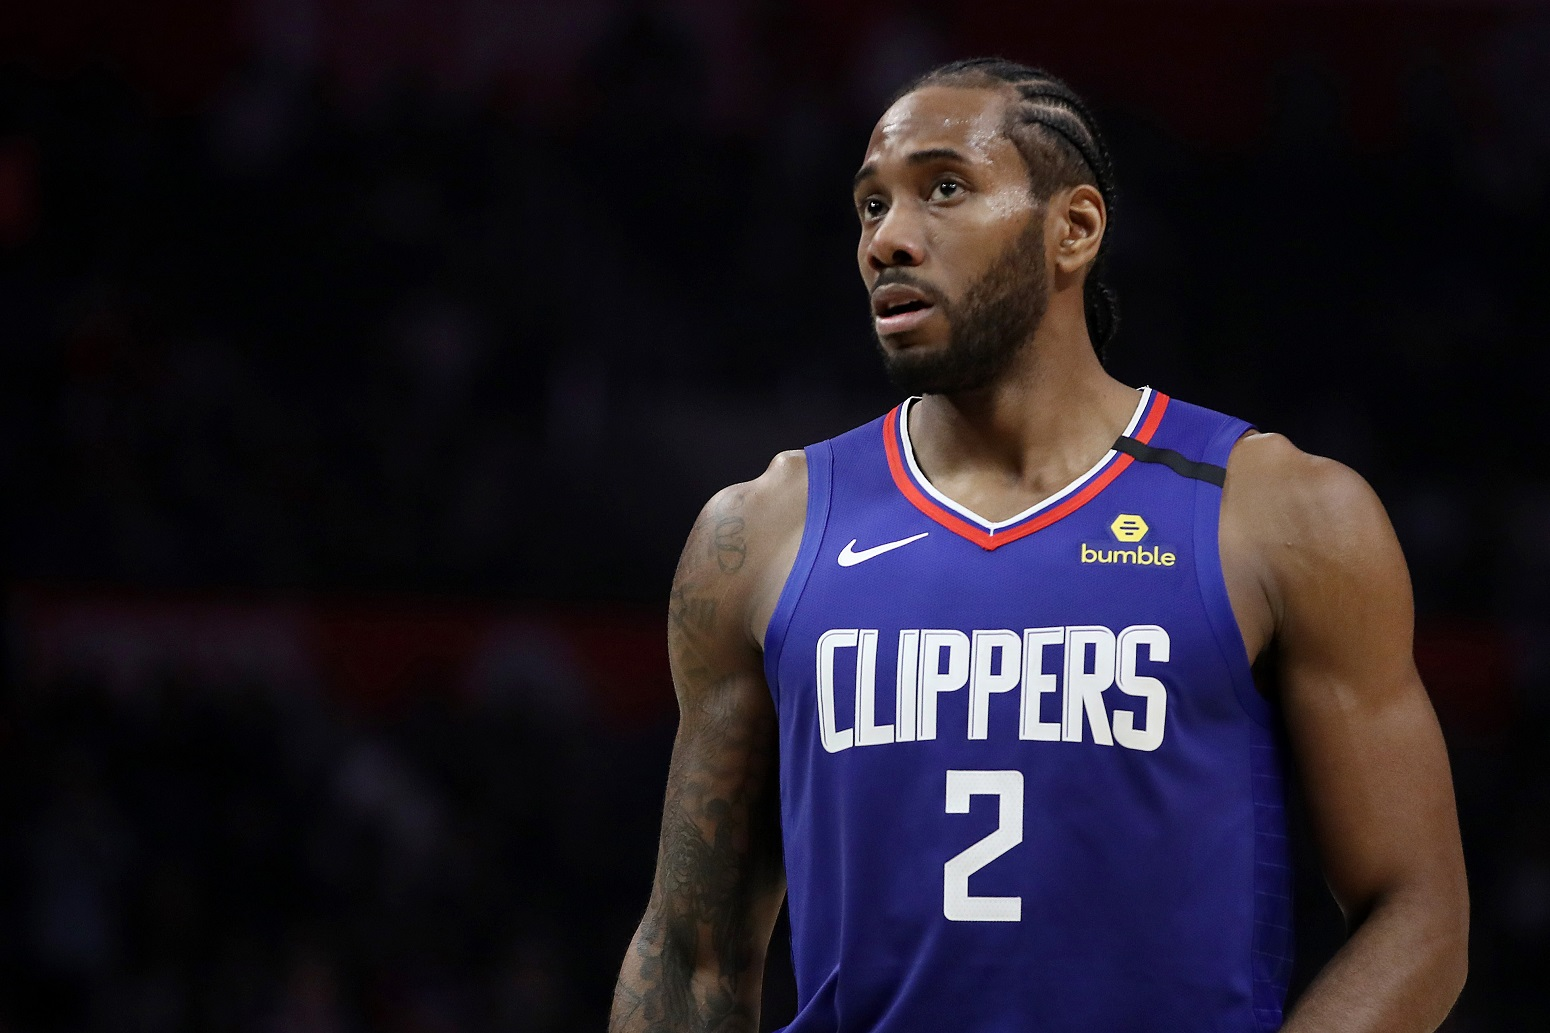 Clippers Kawhi Leonard Orlando Bubble